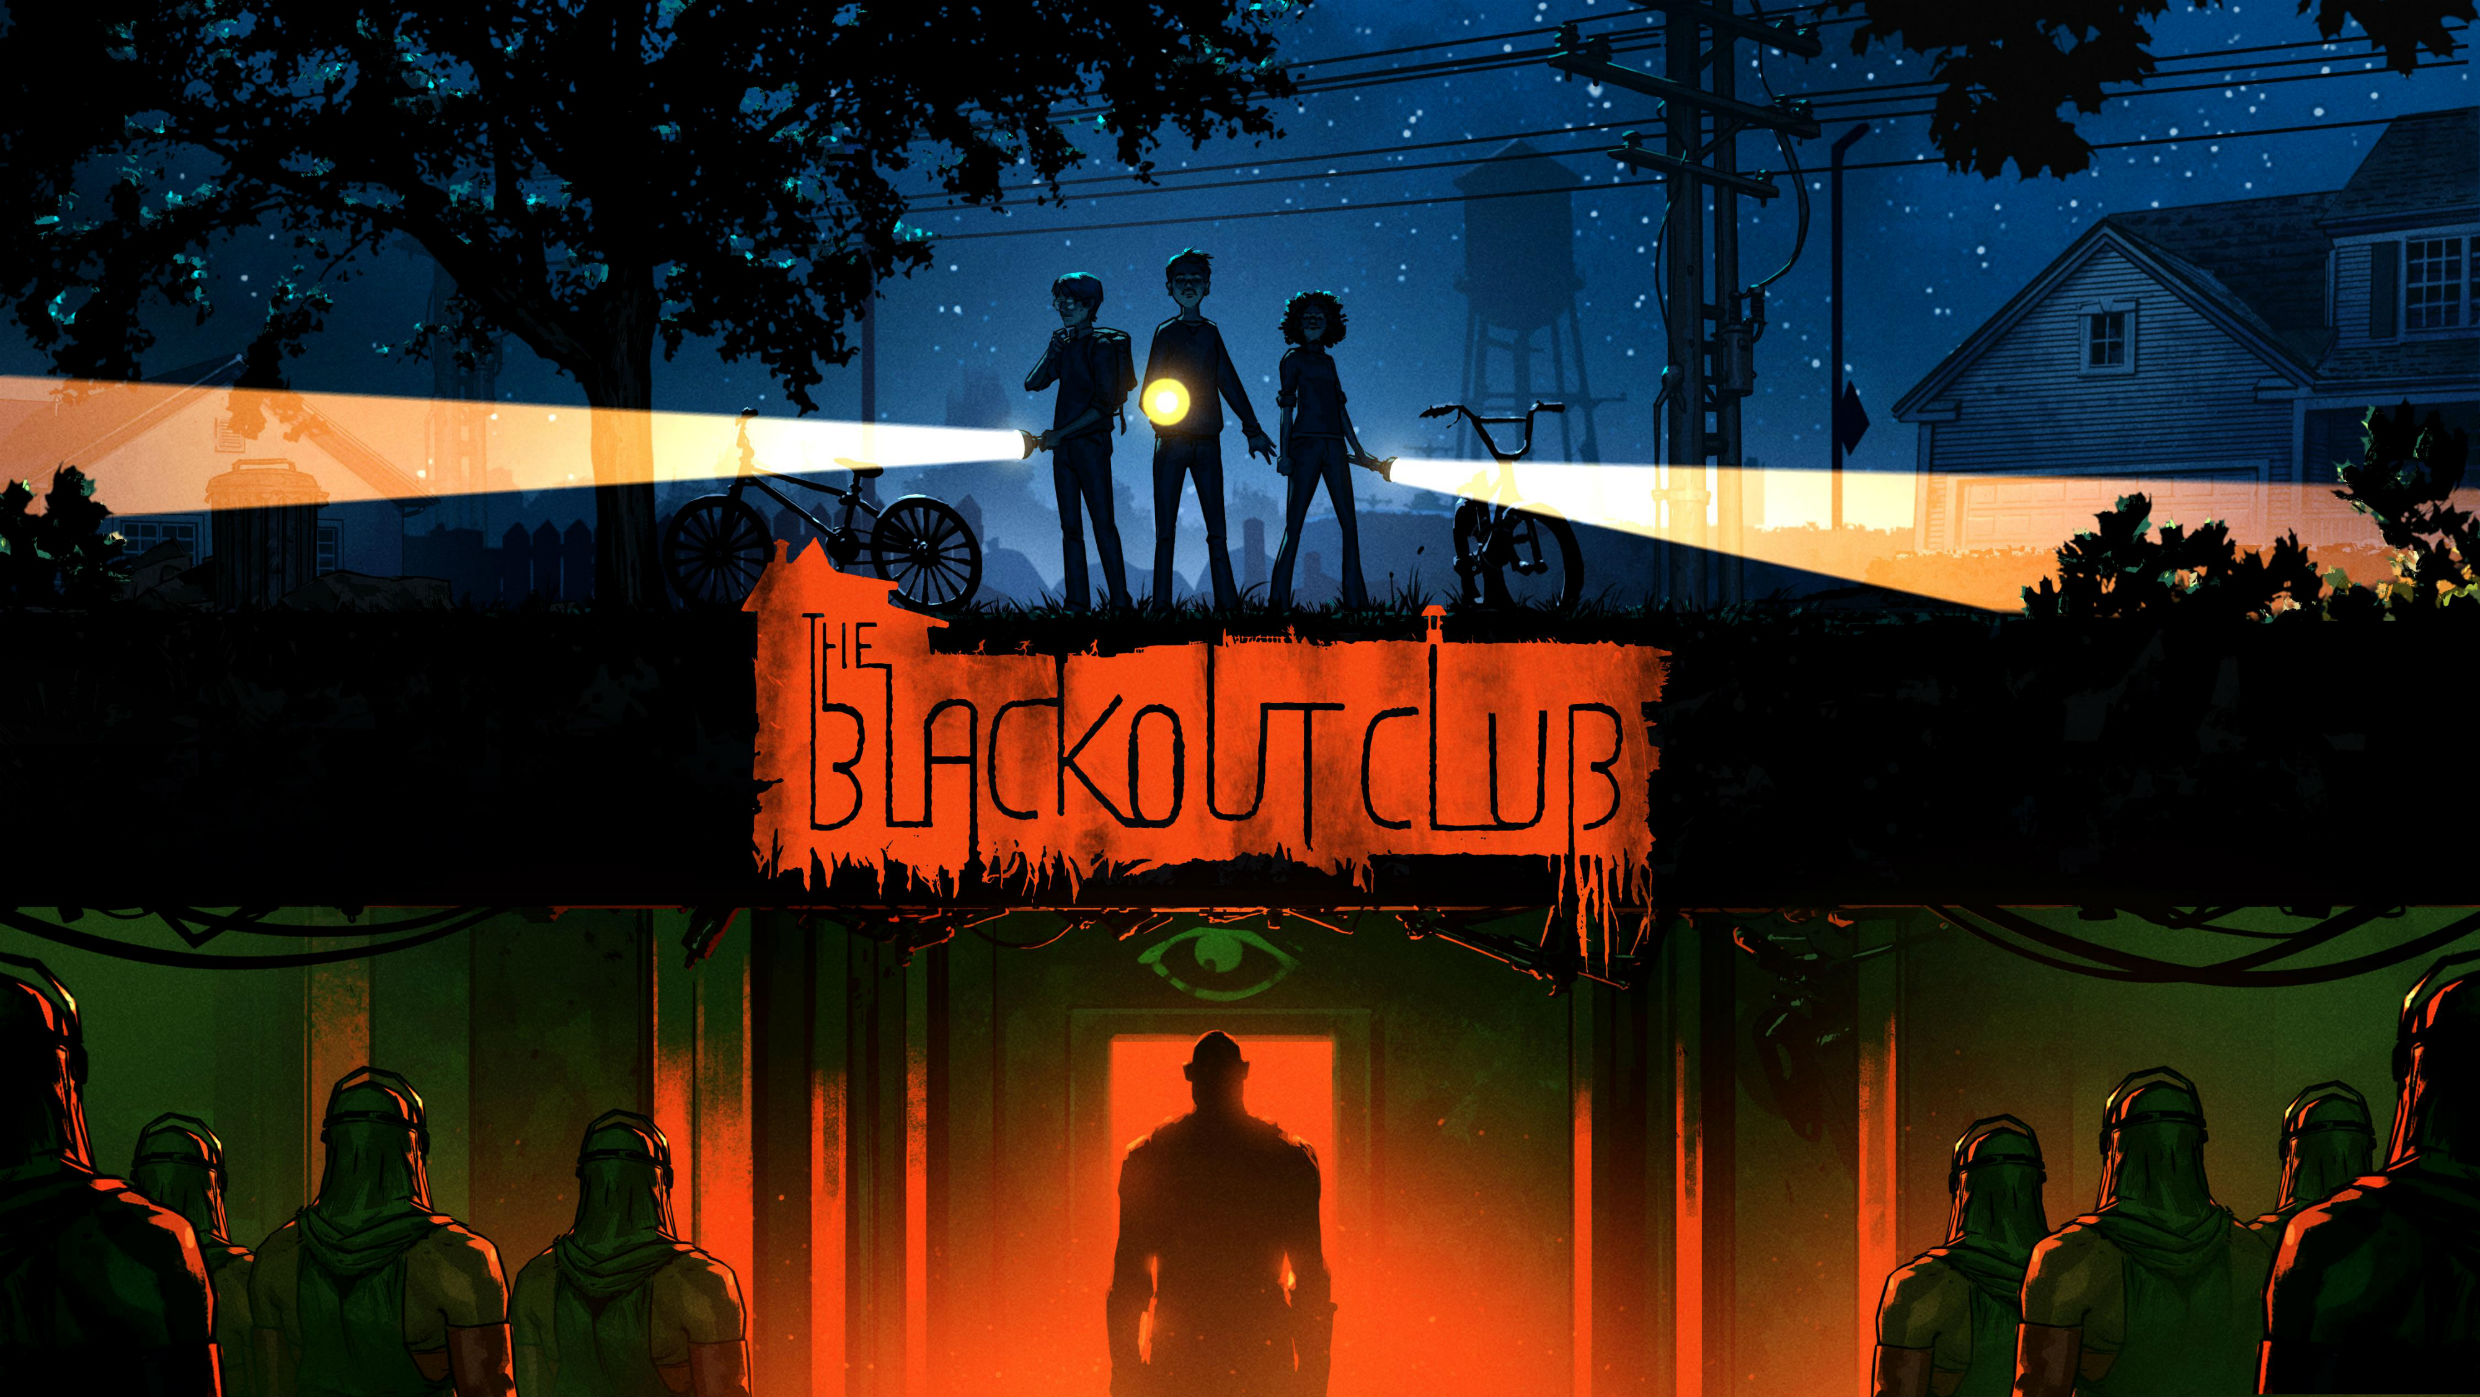 Une question concernant The Blackout Club ?